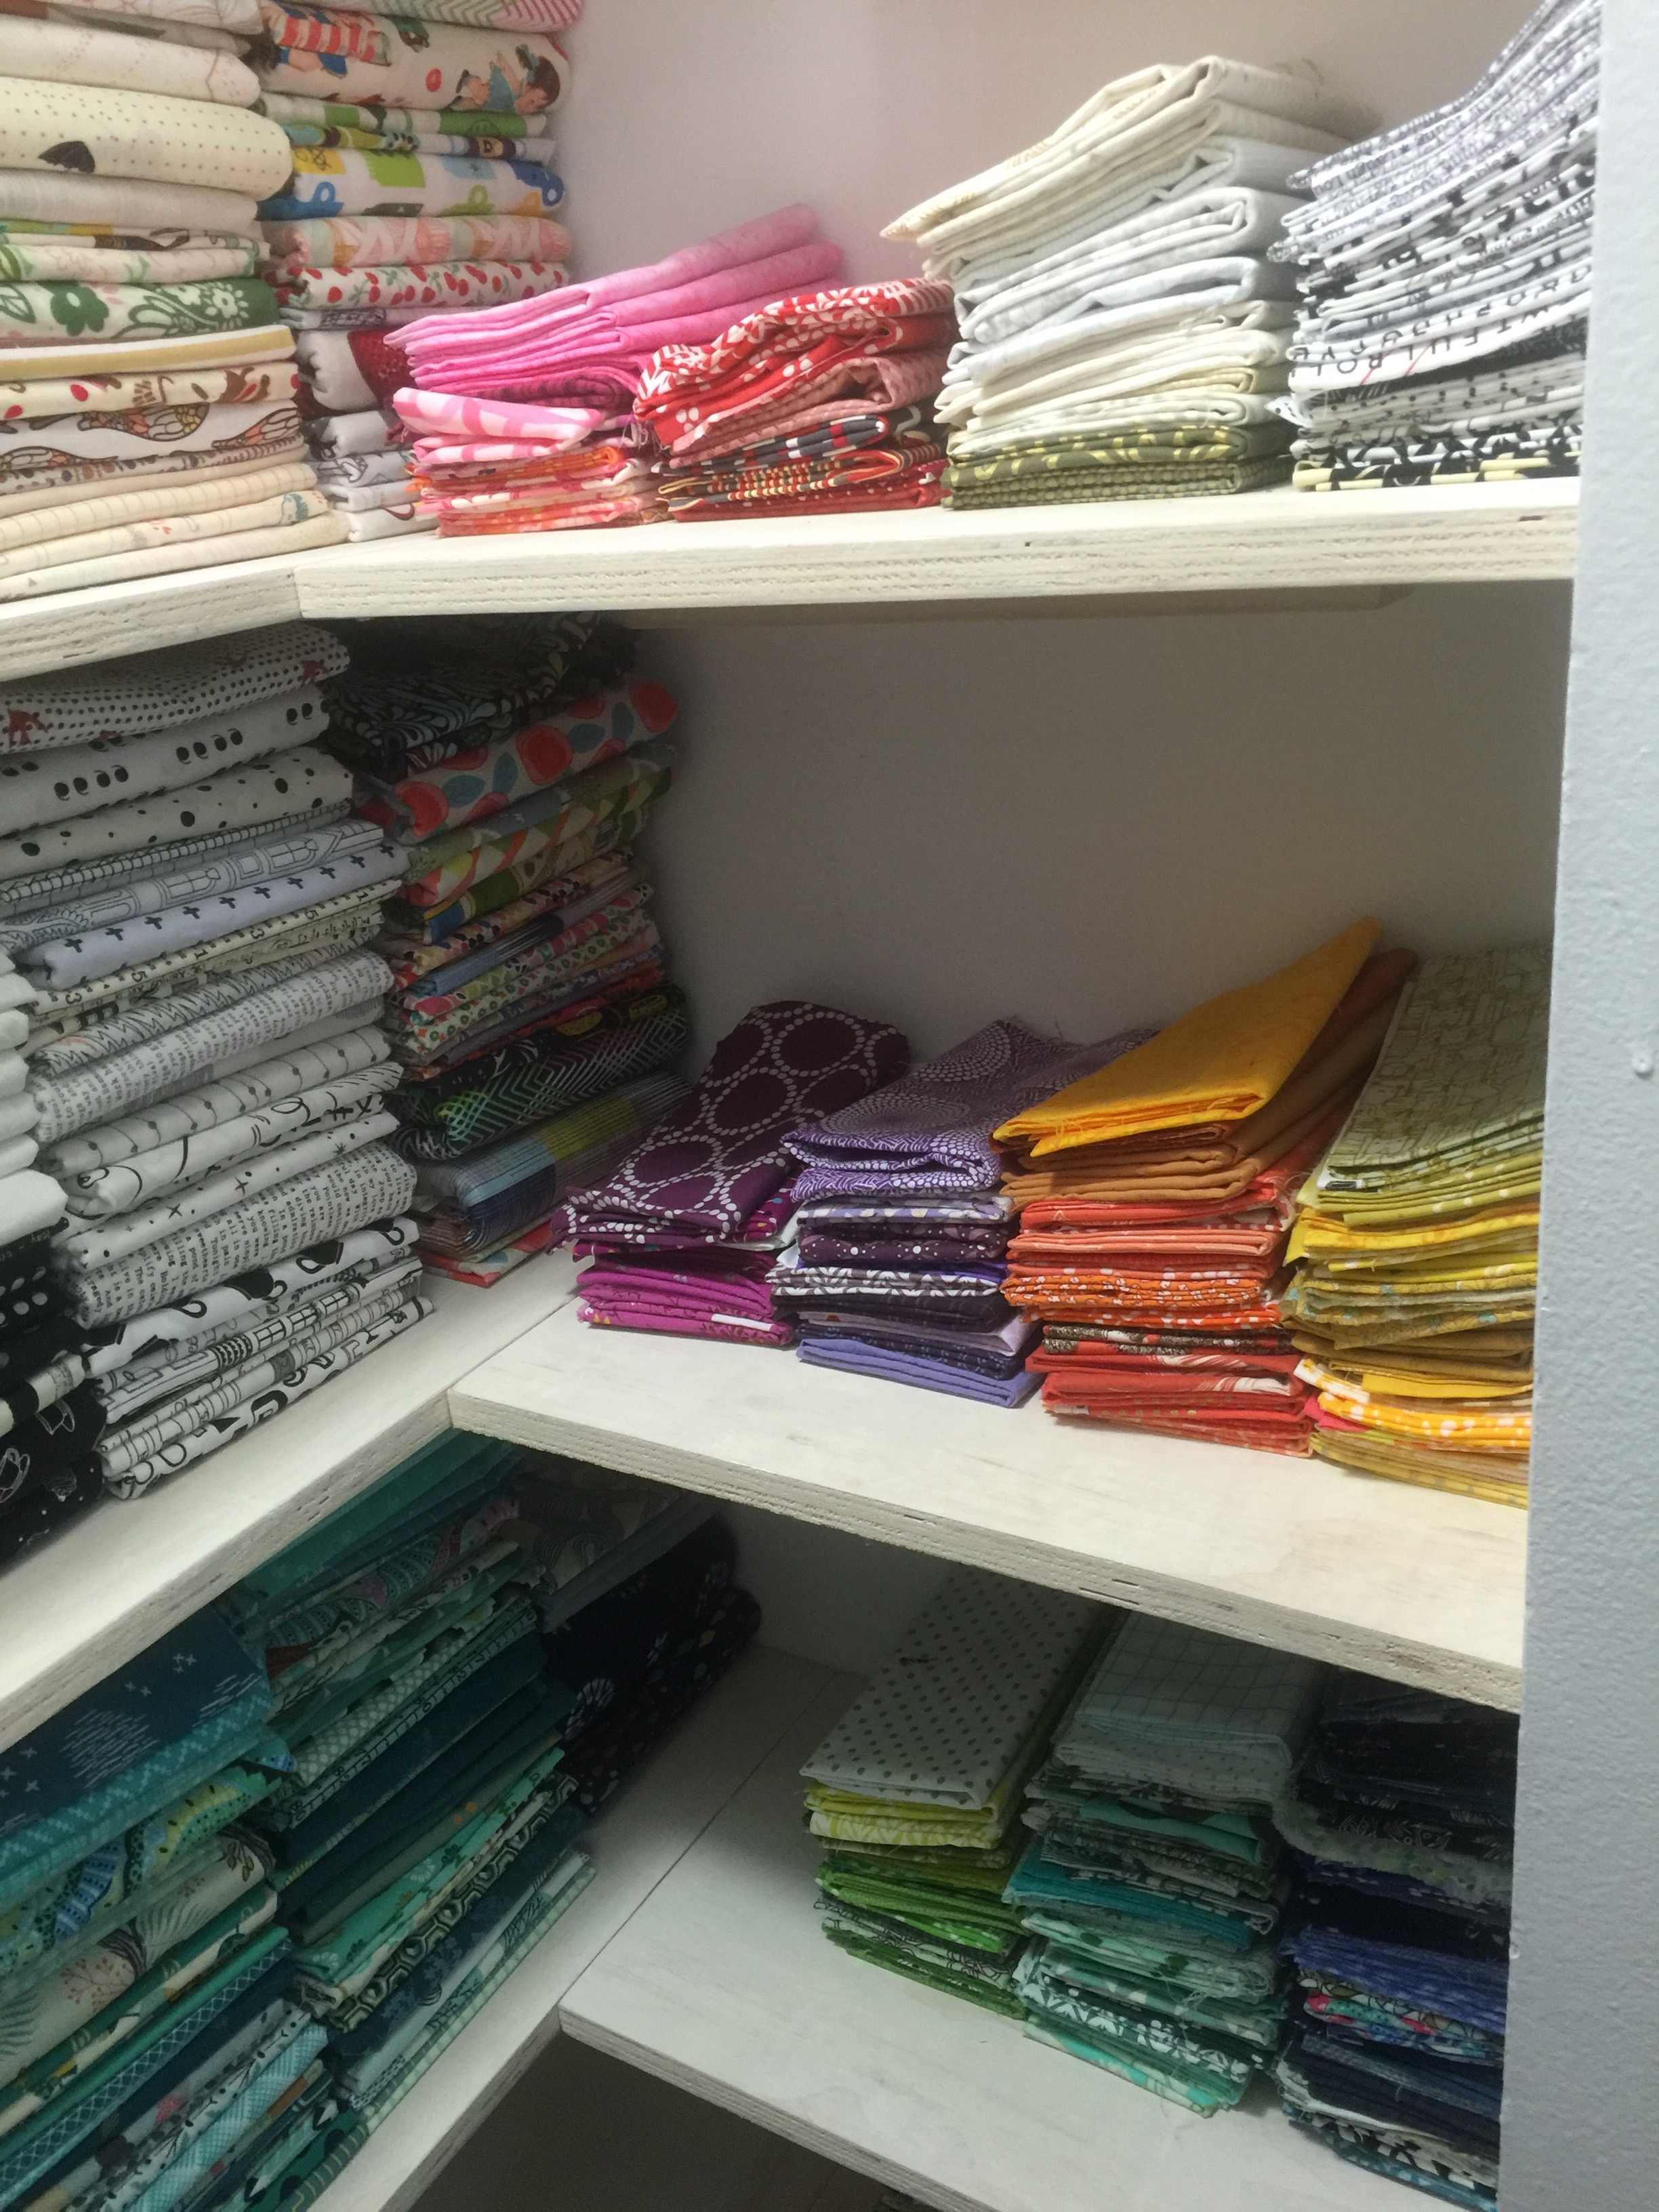 Fat quarters on the other side